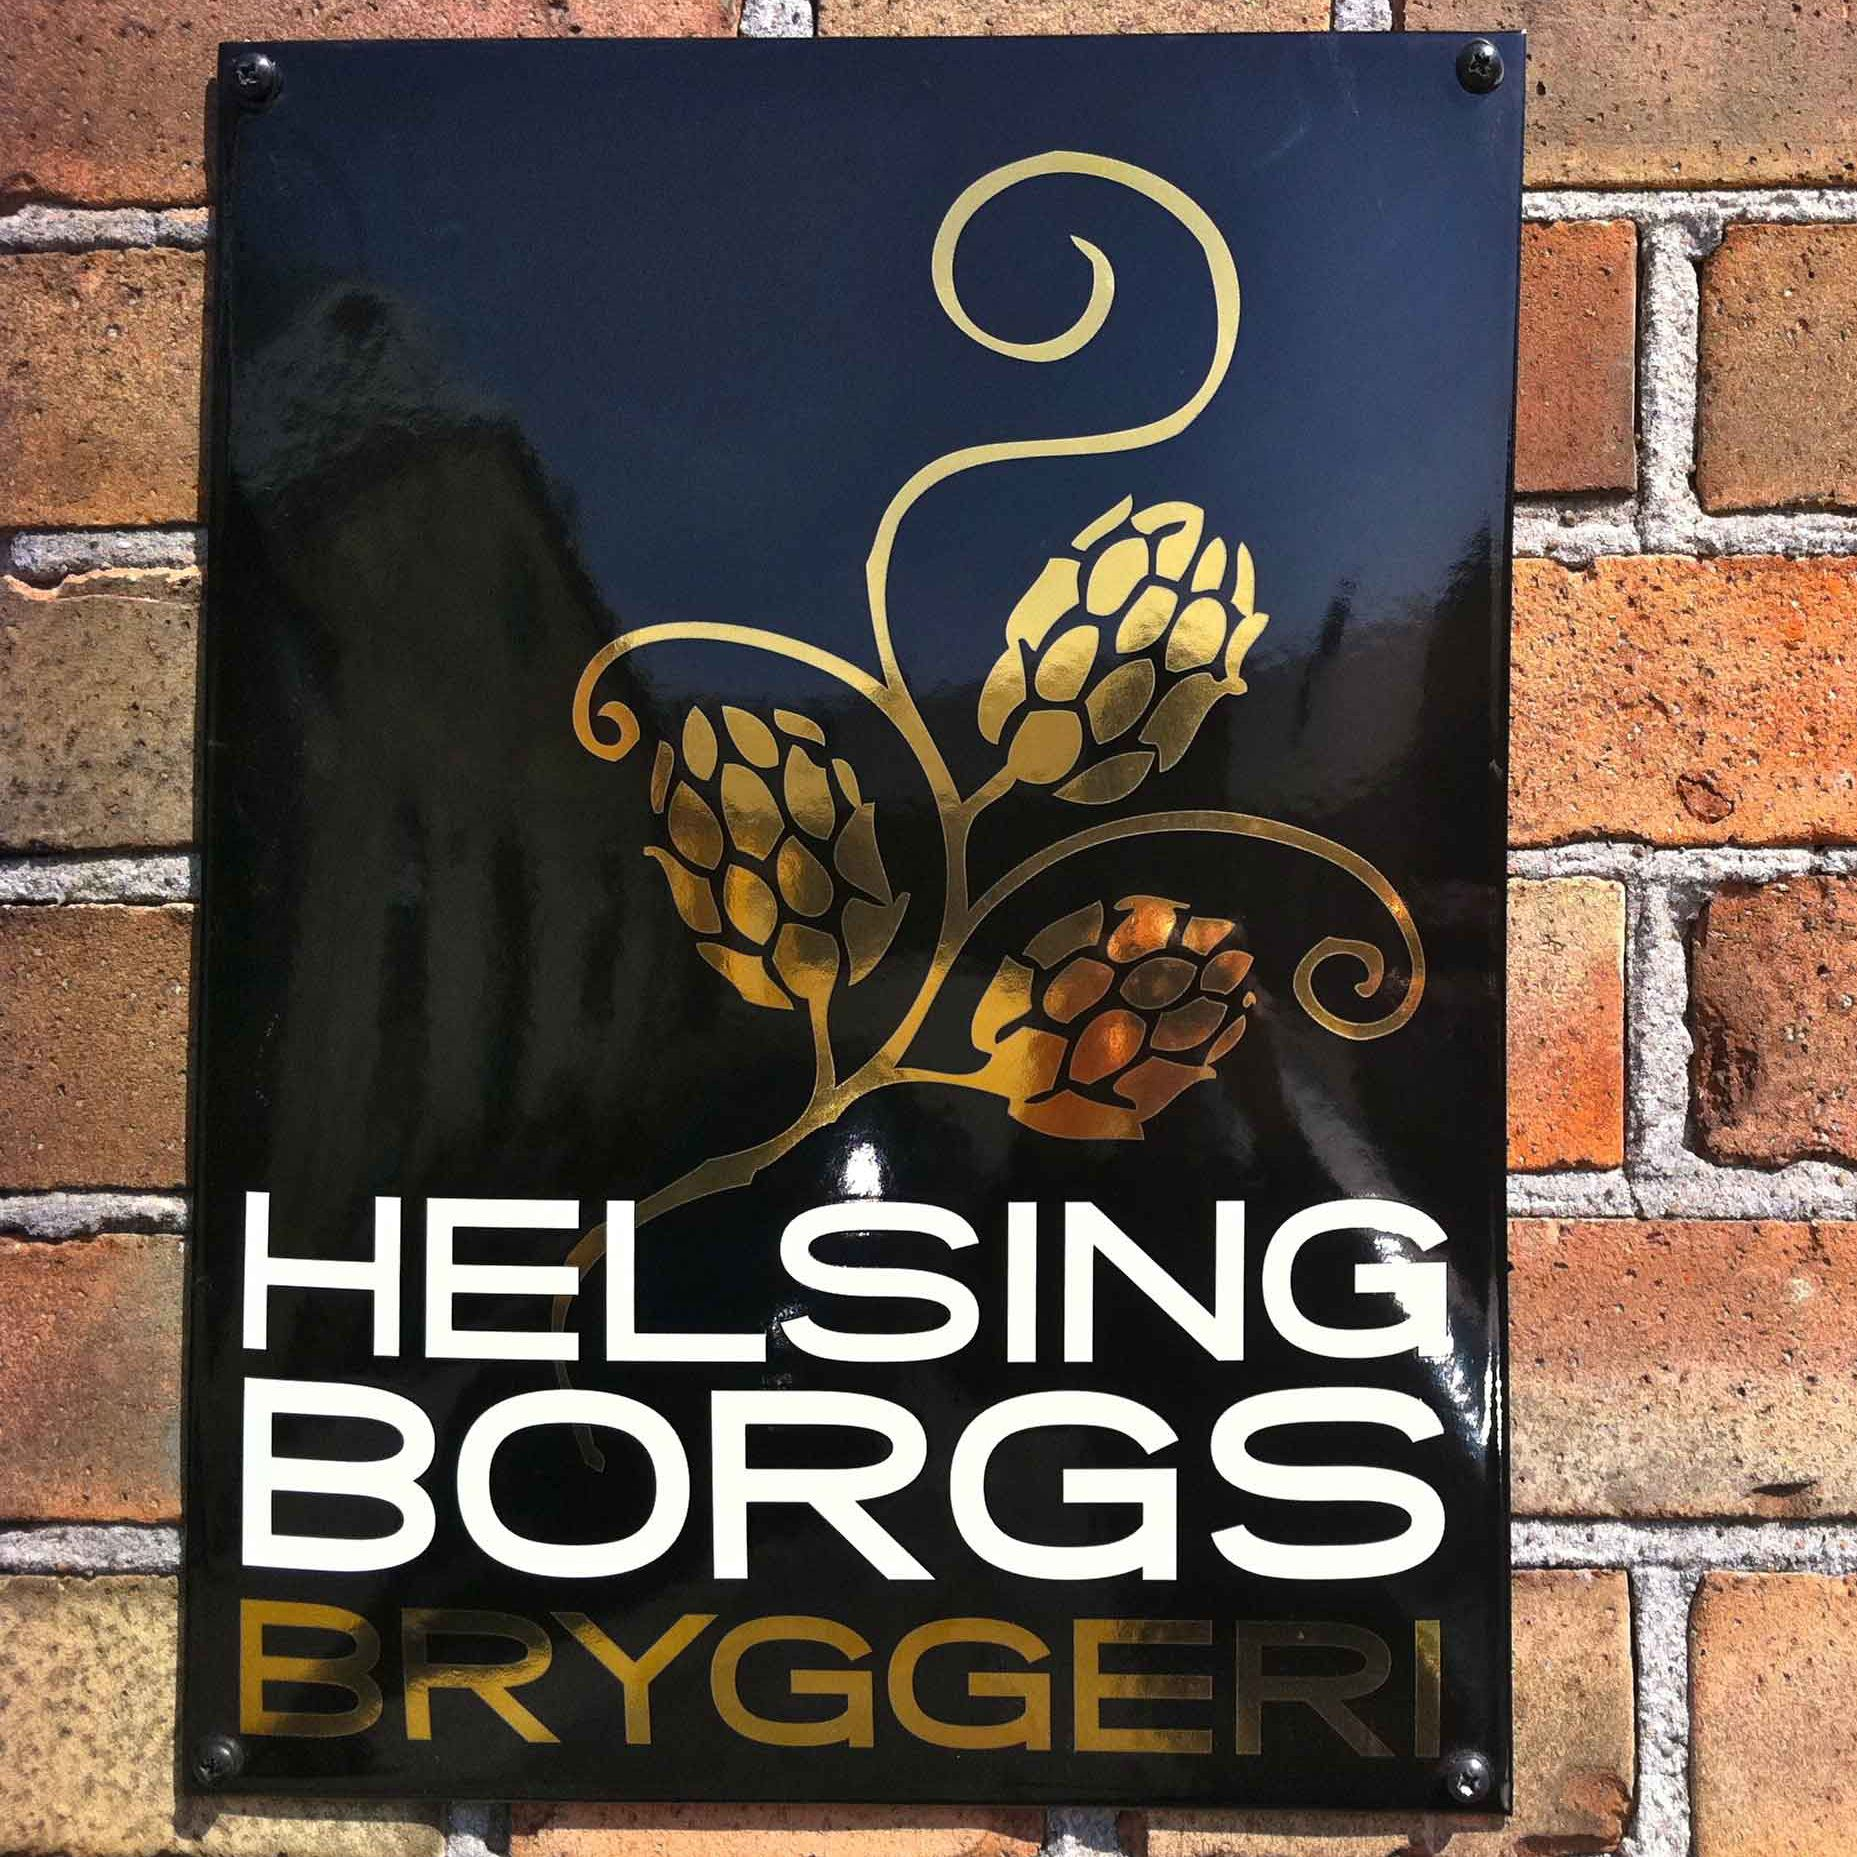 Brewery tour – experience the sights, smells and tastes of Helsingborgs Bryggeri